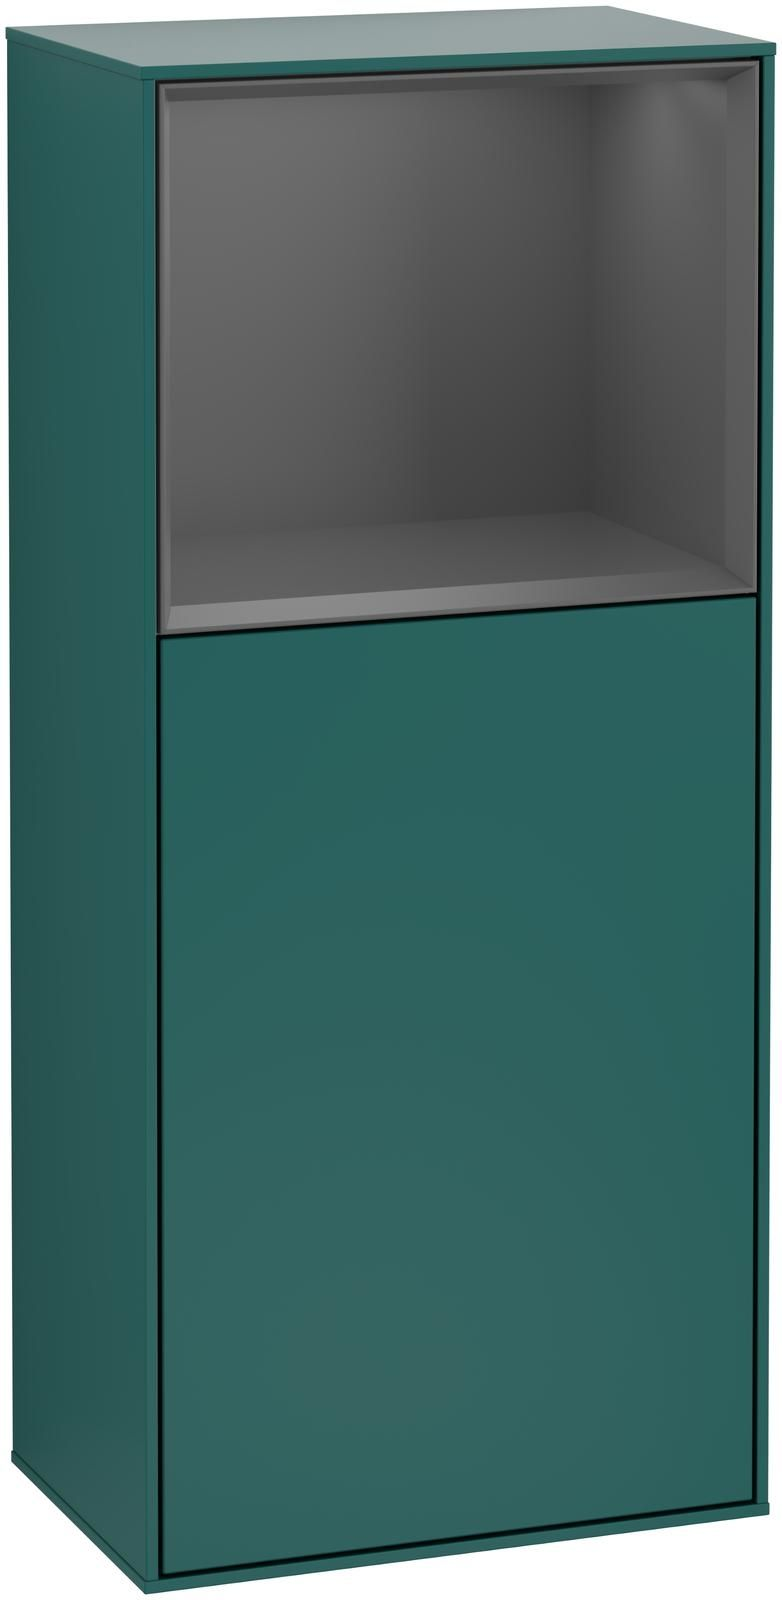 Villeroy & Boch Finion F52 Seitenschrank mit Regalelement 1 Tür Anschlag links LED-Beleuchtung B:41,8xH:93,6xT:27cm Front, Korpus: Cedar, Regal: Anthracite Matt F520GKGS